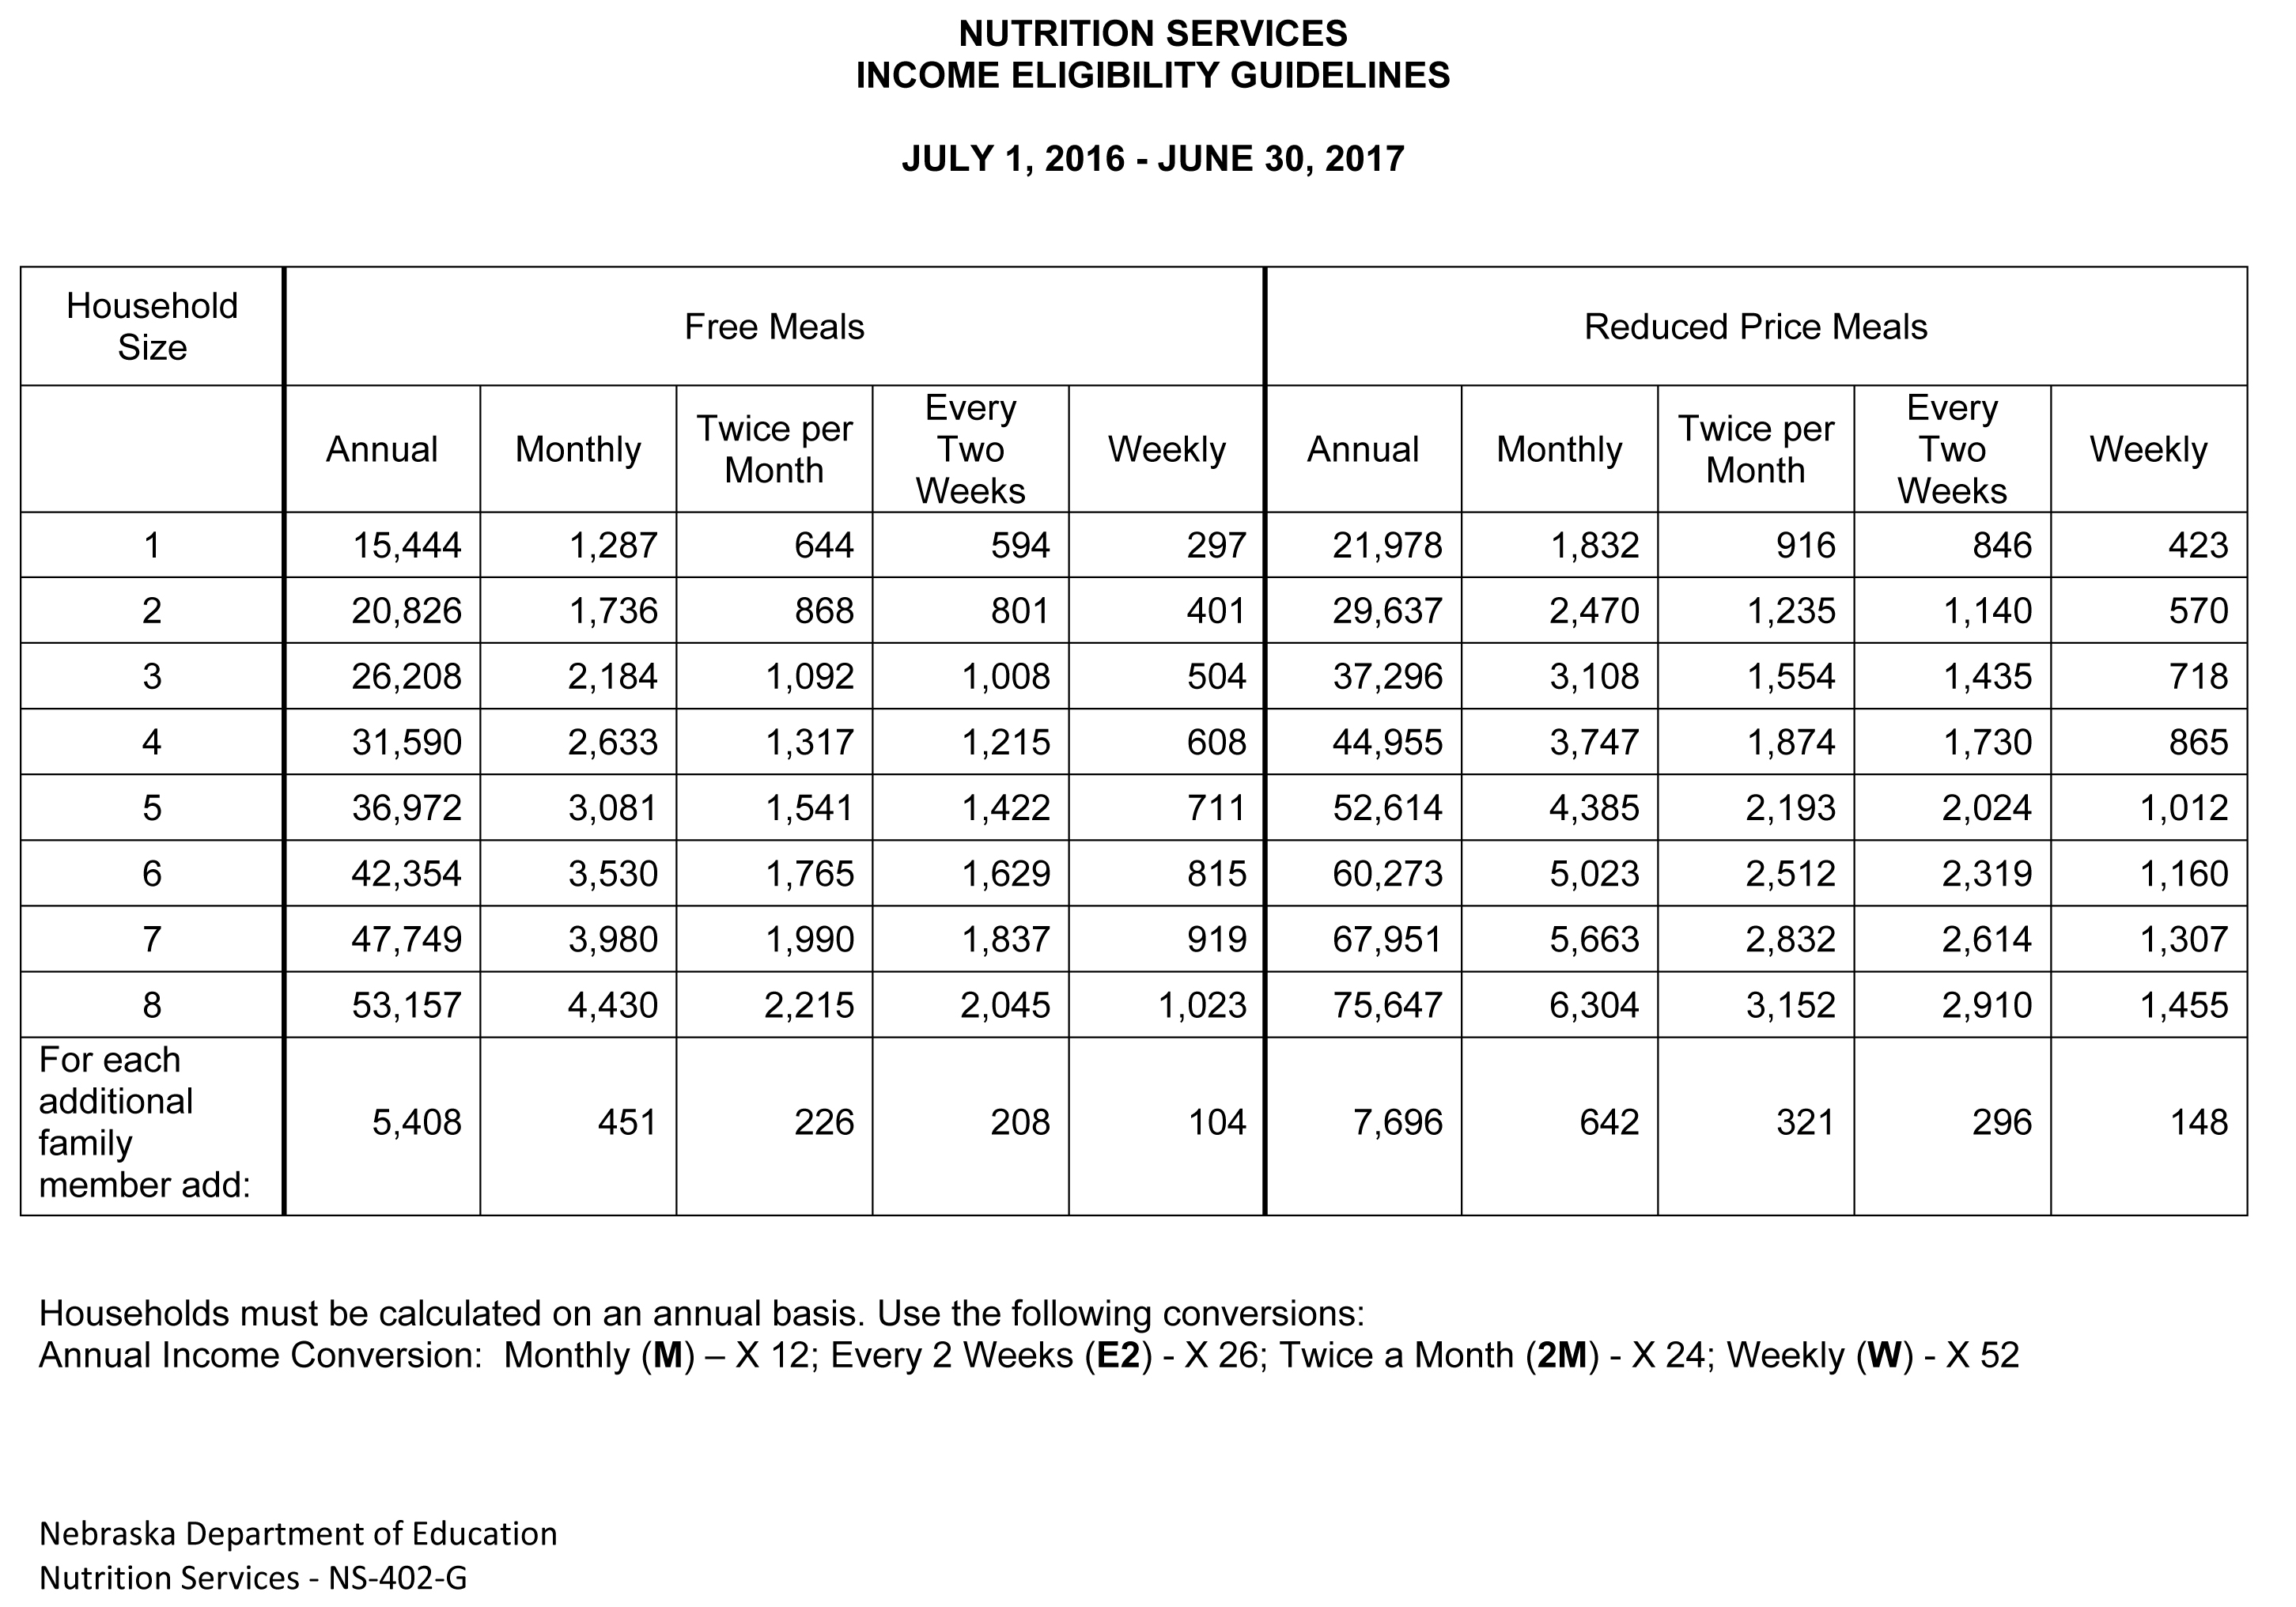 NS-402-G Income Eligibility Guidelines FY 2009